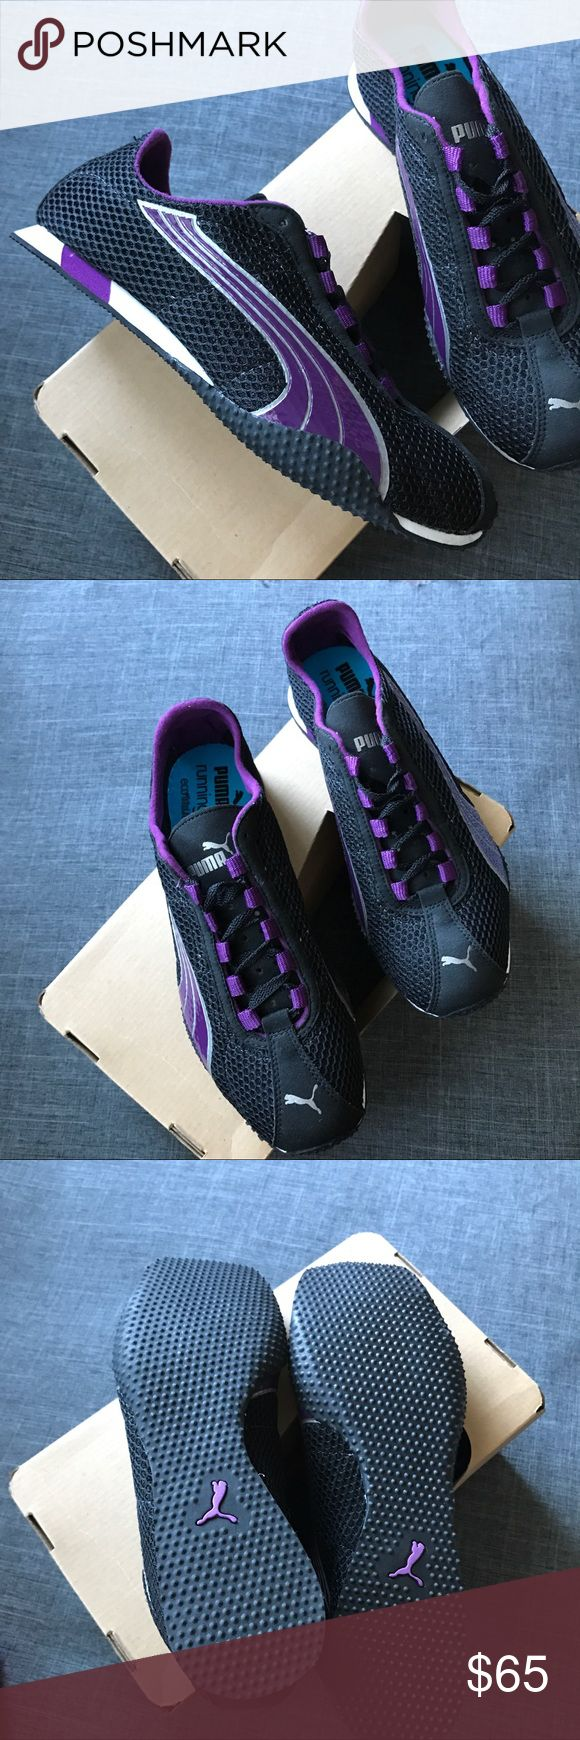 PUMA H-Street + NM Running Shoes Brand new in box Puma running shoes. In Black and Purple Light weight, mesh and very comfy. Size 9. Come in box with clever little bag. Smoke and Pet free home. Excellent condition. Puma Shoes Athletic Shoes